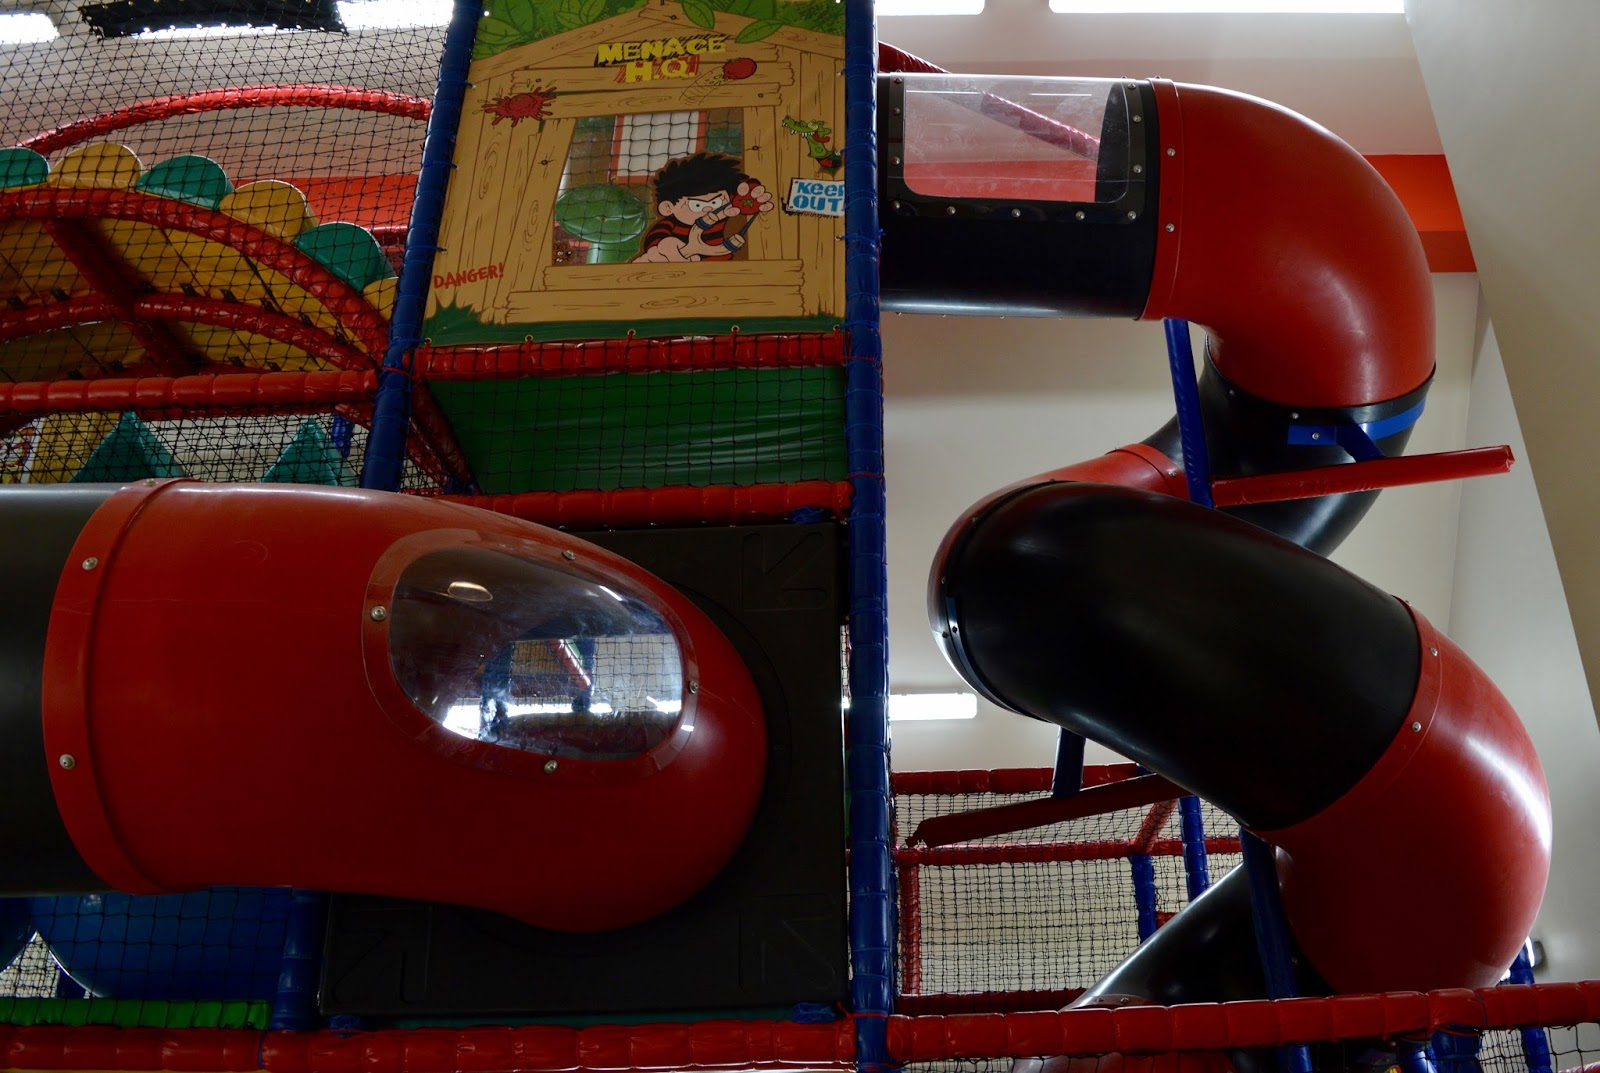 Derwent Crossing Brewers Fayre near intu Metrocentre | Play Area & Children's Menu Review - indoor play area